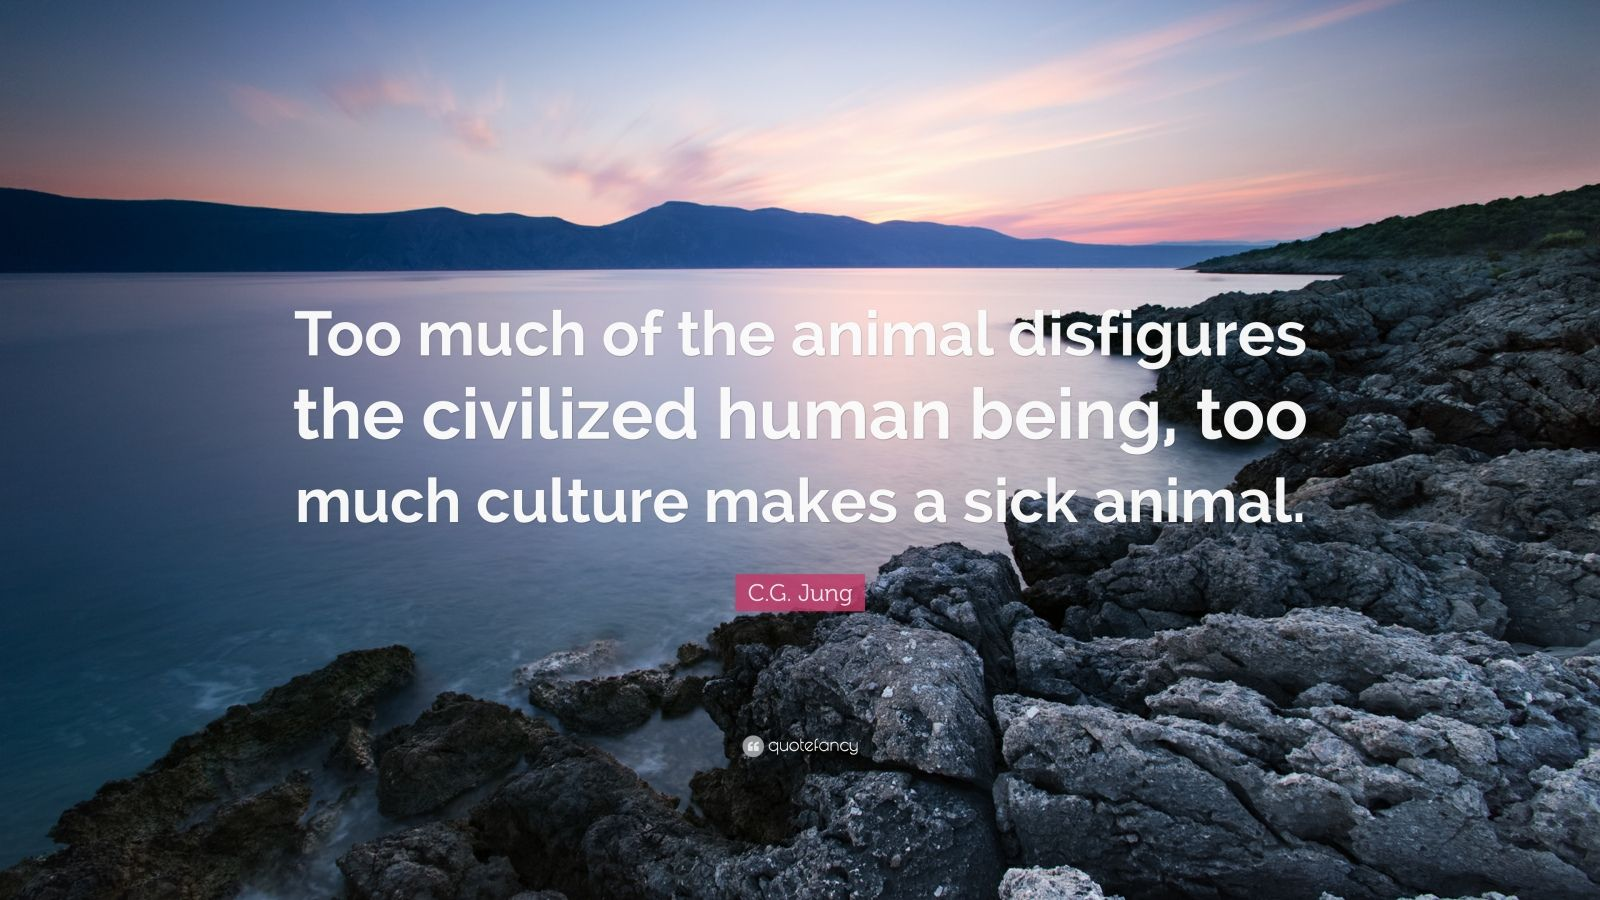 """C.G. Jung Quote: """"Too much of the animal disfigures the civilized human being, too much culture makes a sick animal."""""""